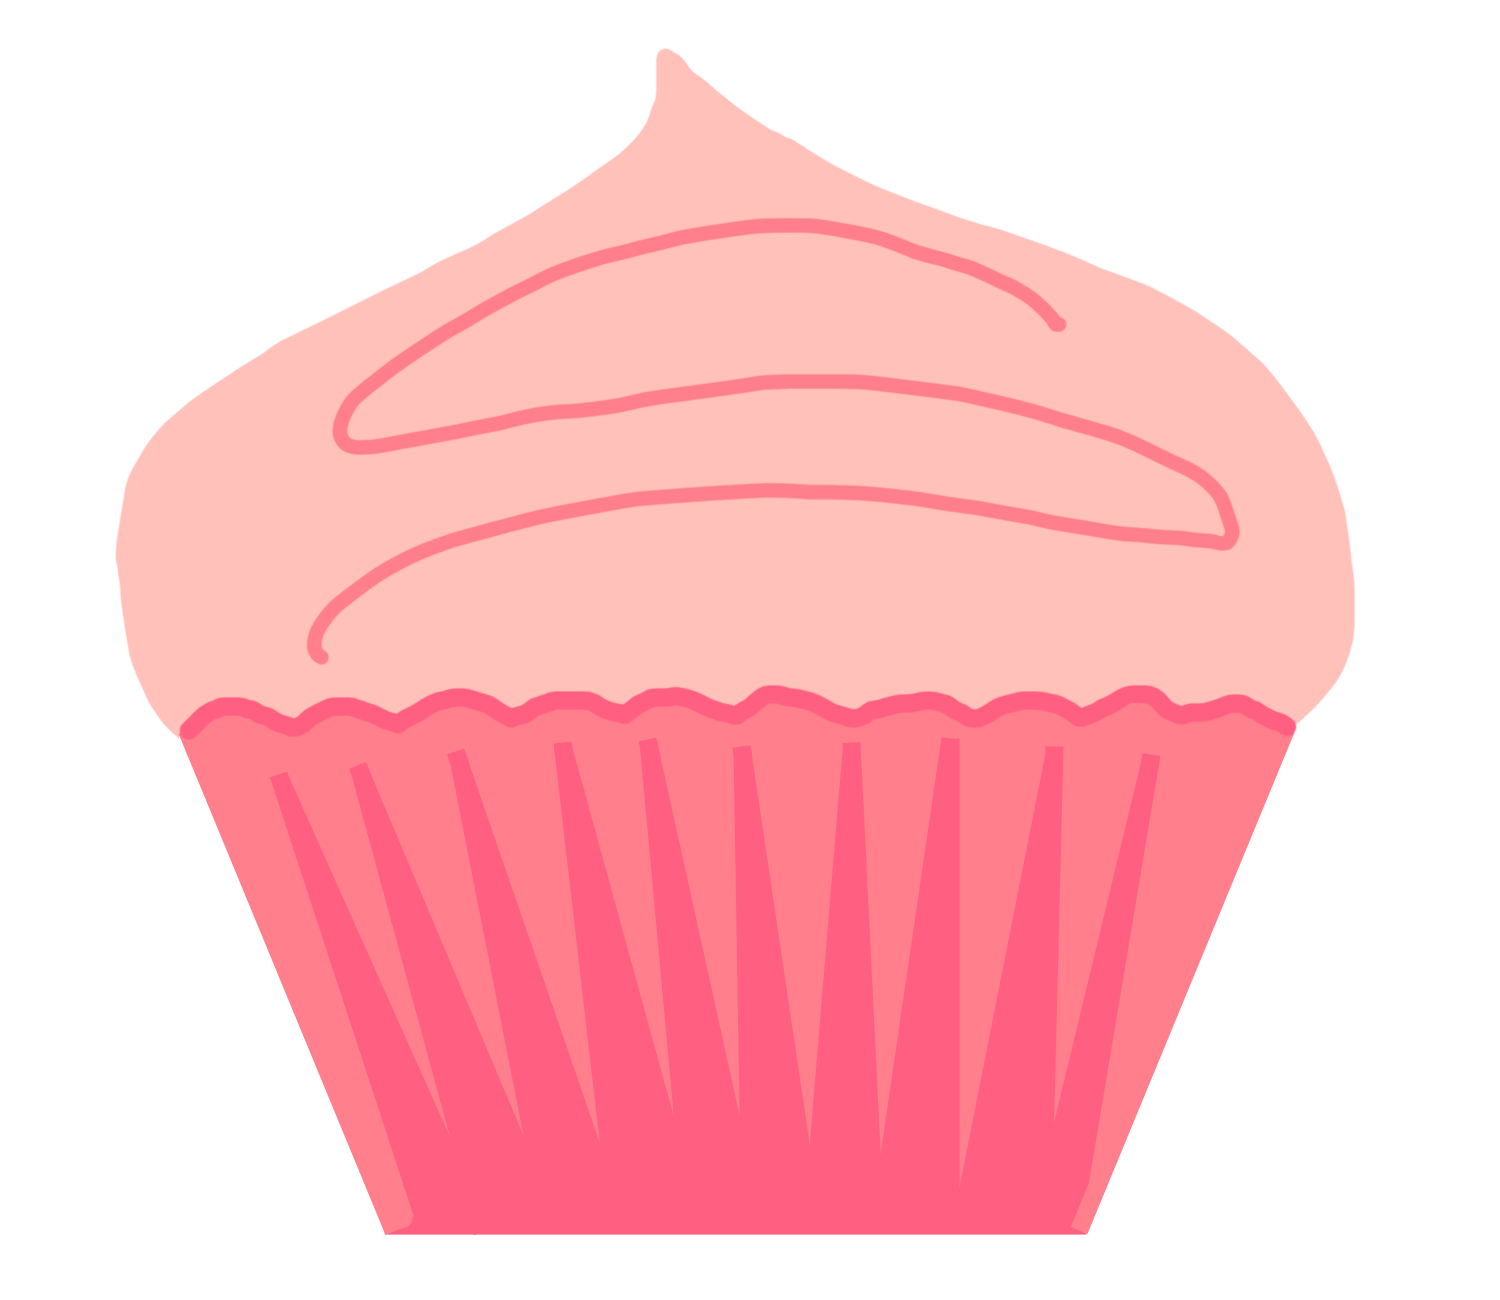 Apple muffin clipart clipart free library Bakery Cupcake Clipart | jokingart.com Cupcake Clipart clipart free library